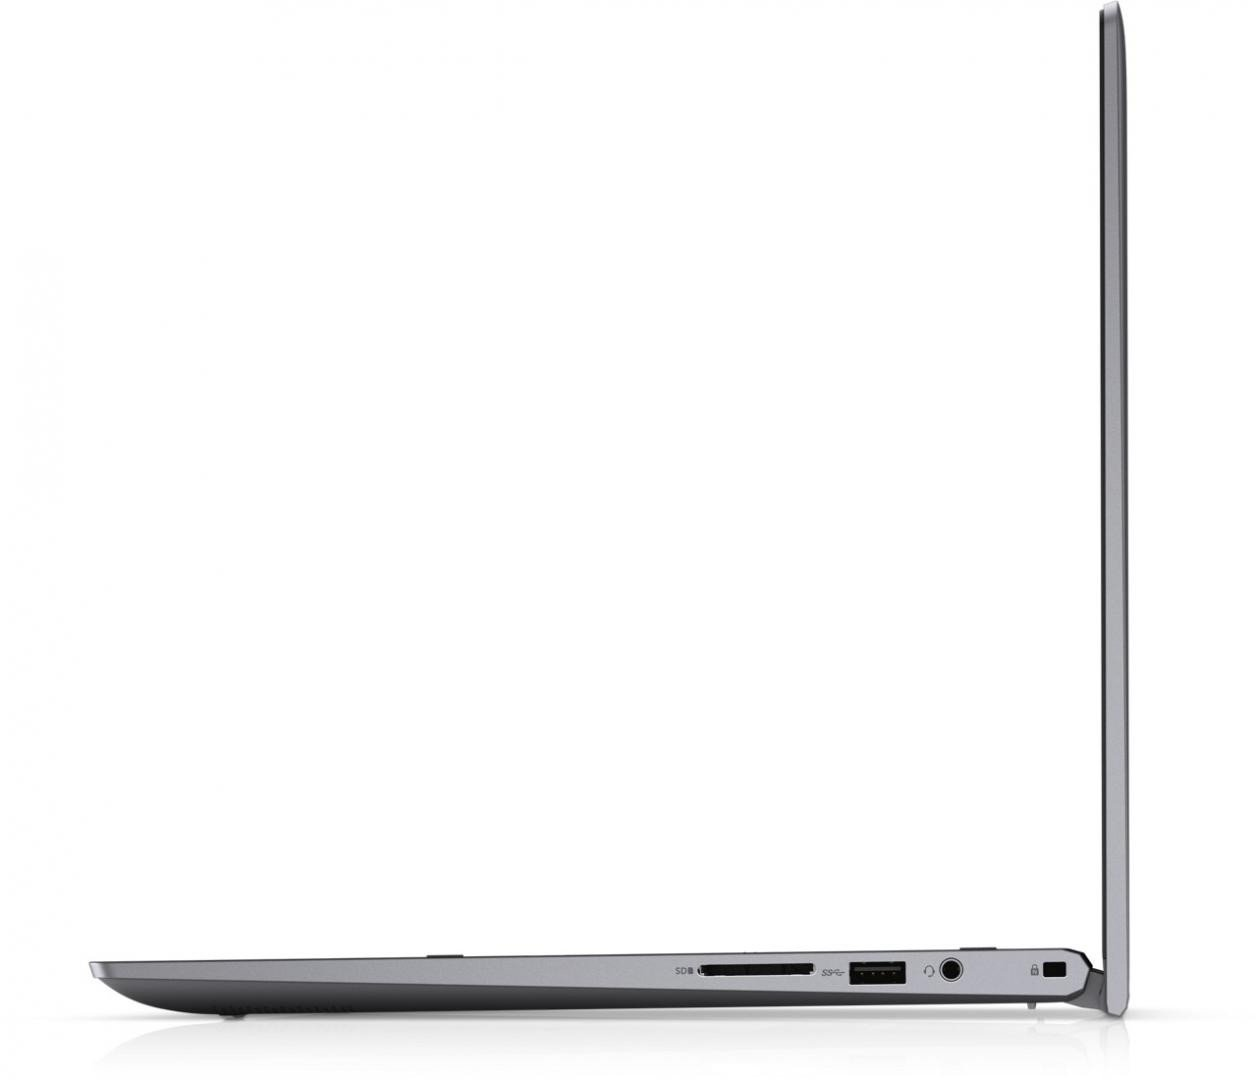 """Laptop Dell Inspiron 5406 2in1, 14.0"""" FHD, Touch, i7-1165G7, 16GB, 512GB SSD, GeForce MX330, W10 Pro - imaginea 7"""